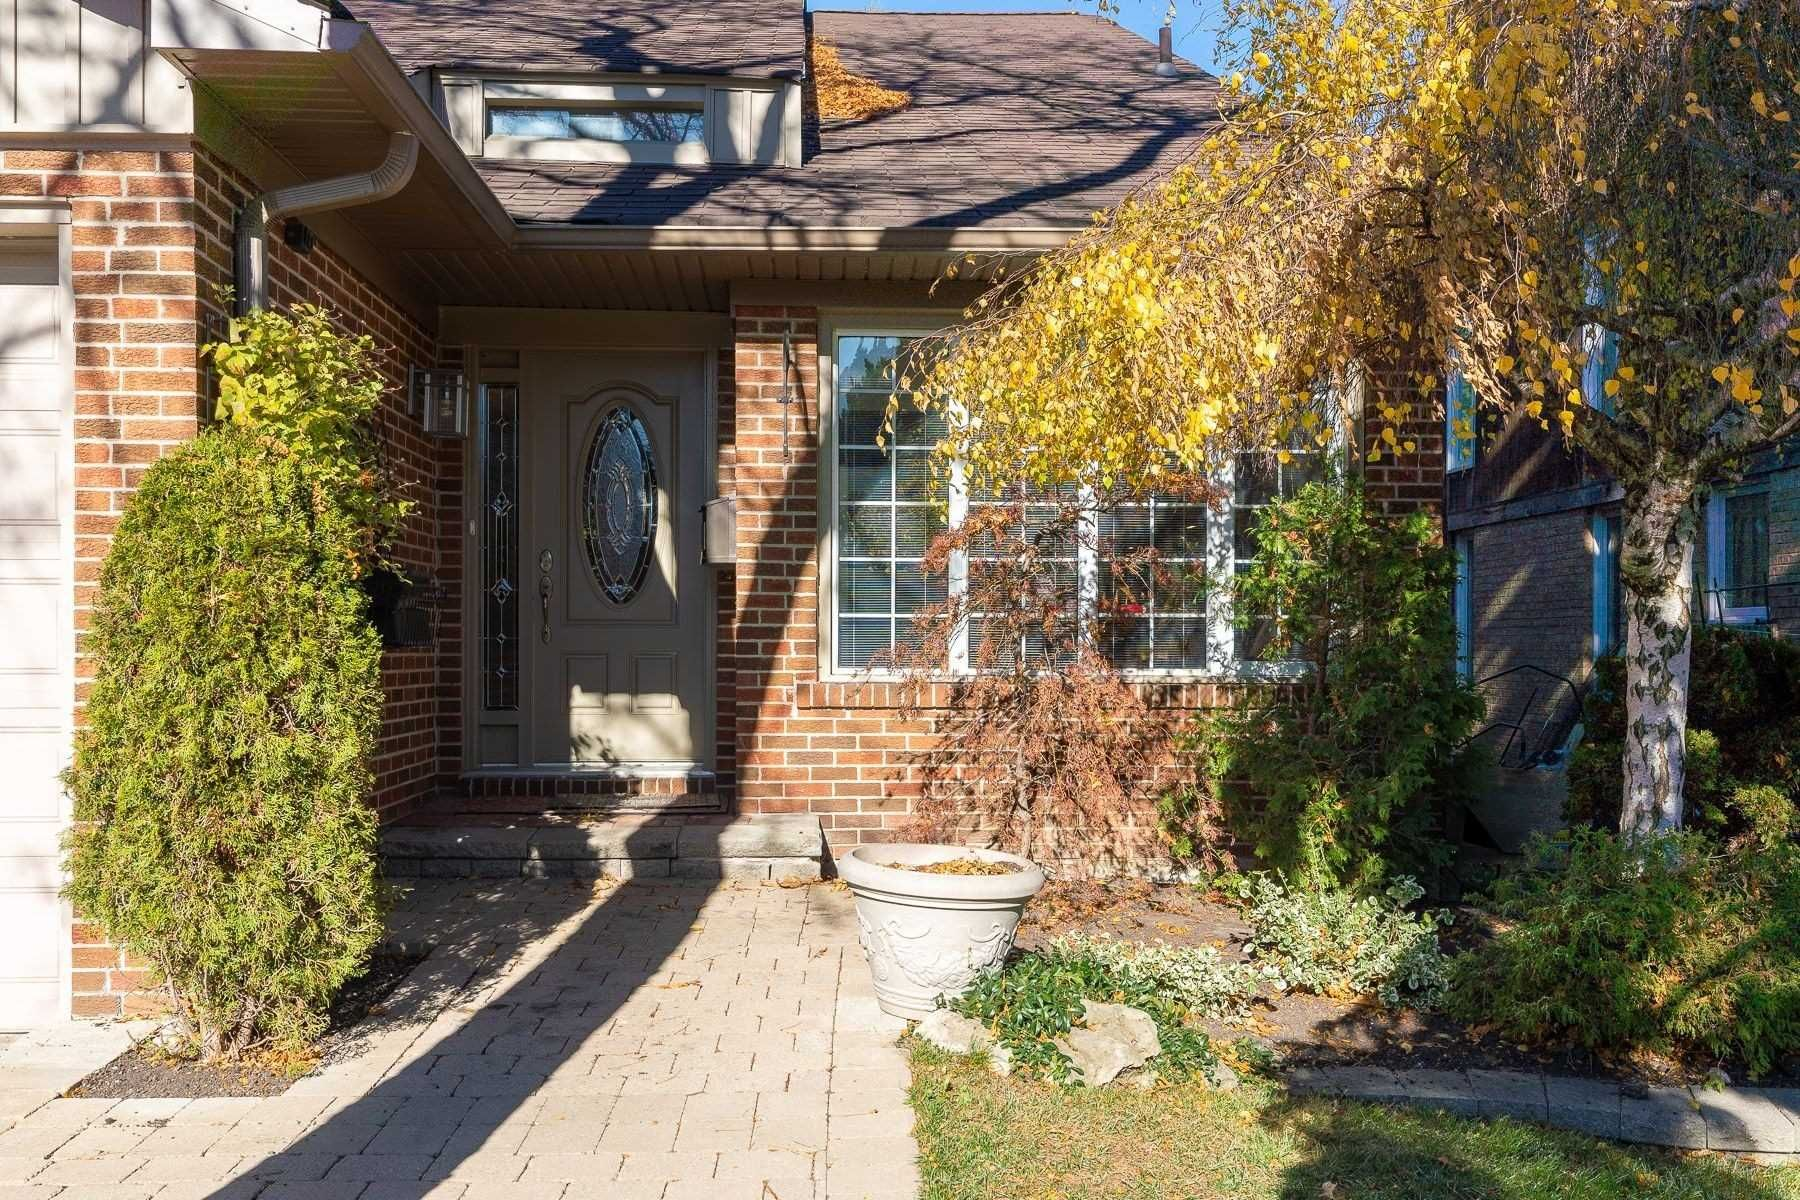 Main Photo: 68 Kings College Road in Markham: Aileen-Willowbrook House (2-Storey) for sale : MLS®# N4990400